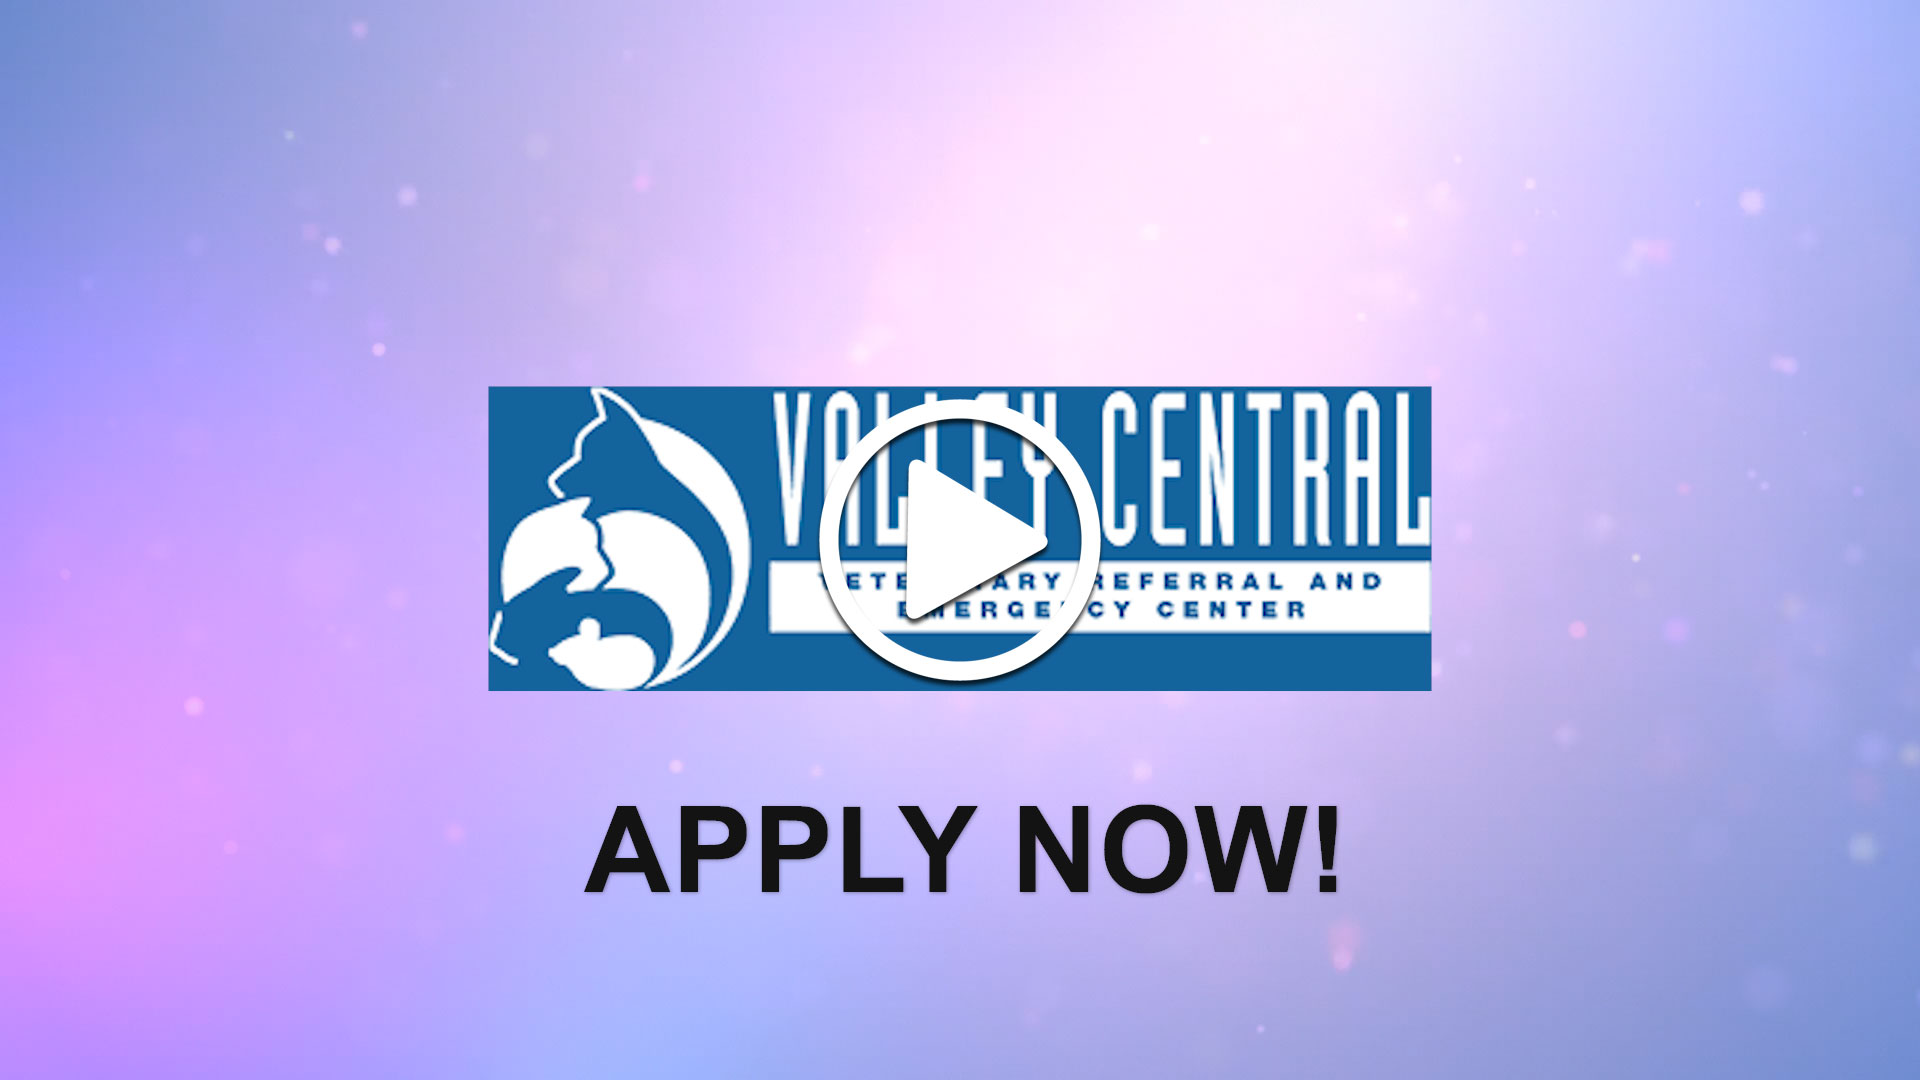 Watch our careers video for available job opening Emergency Veterinarian FT and PT - 25,000 Sign-on Bonus and Relocation Package in Whitehall, PA.  USA